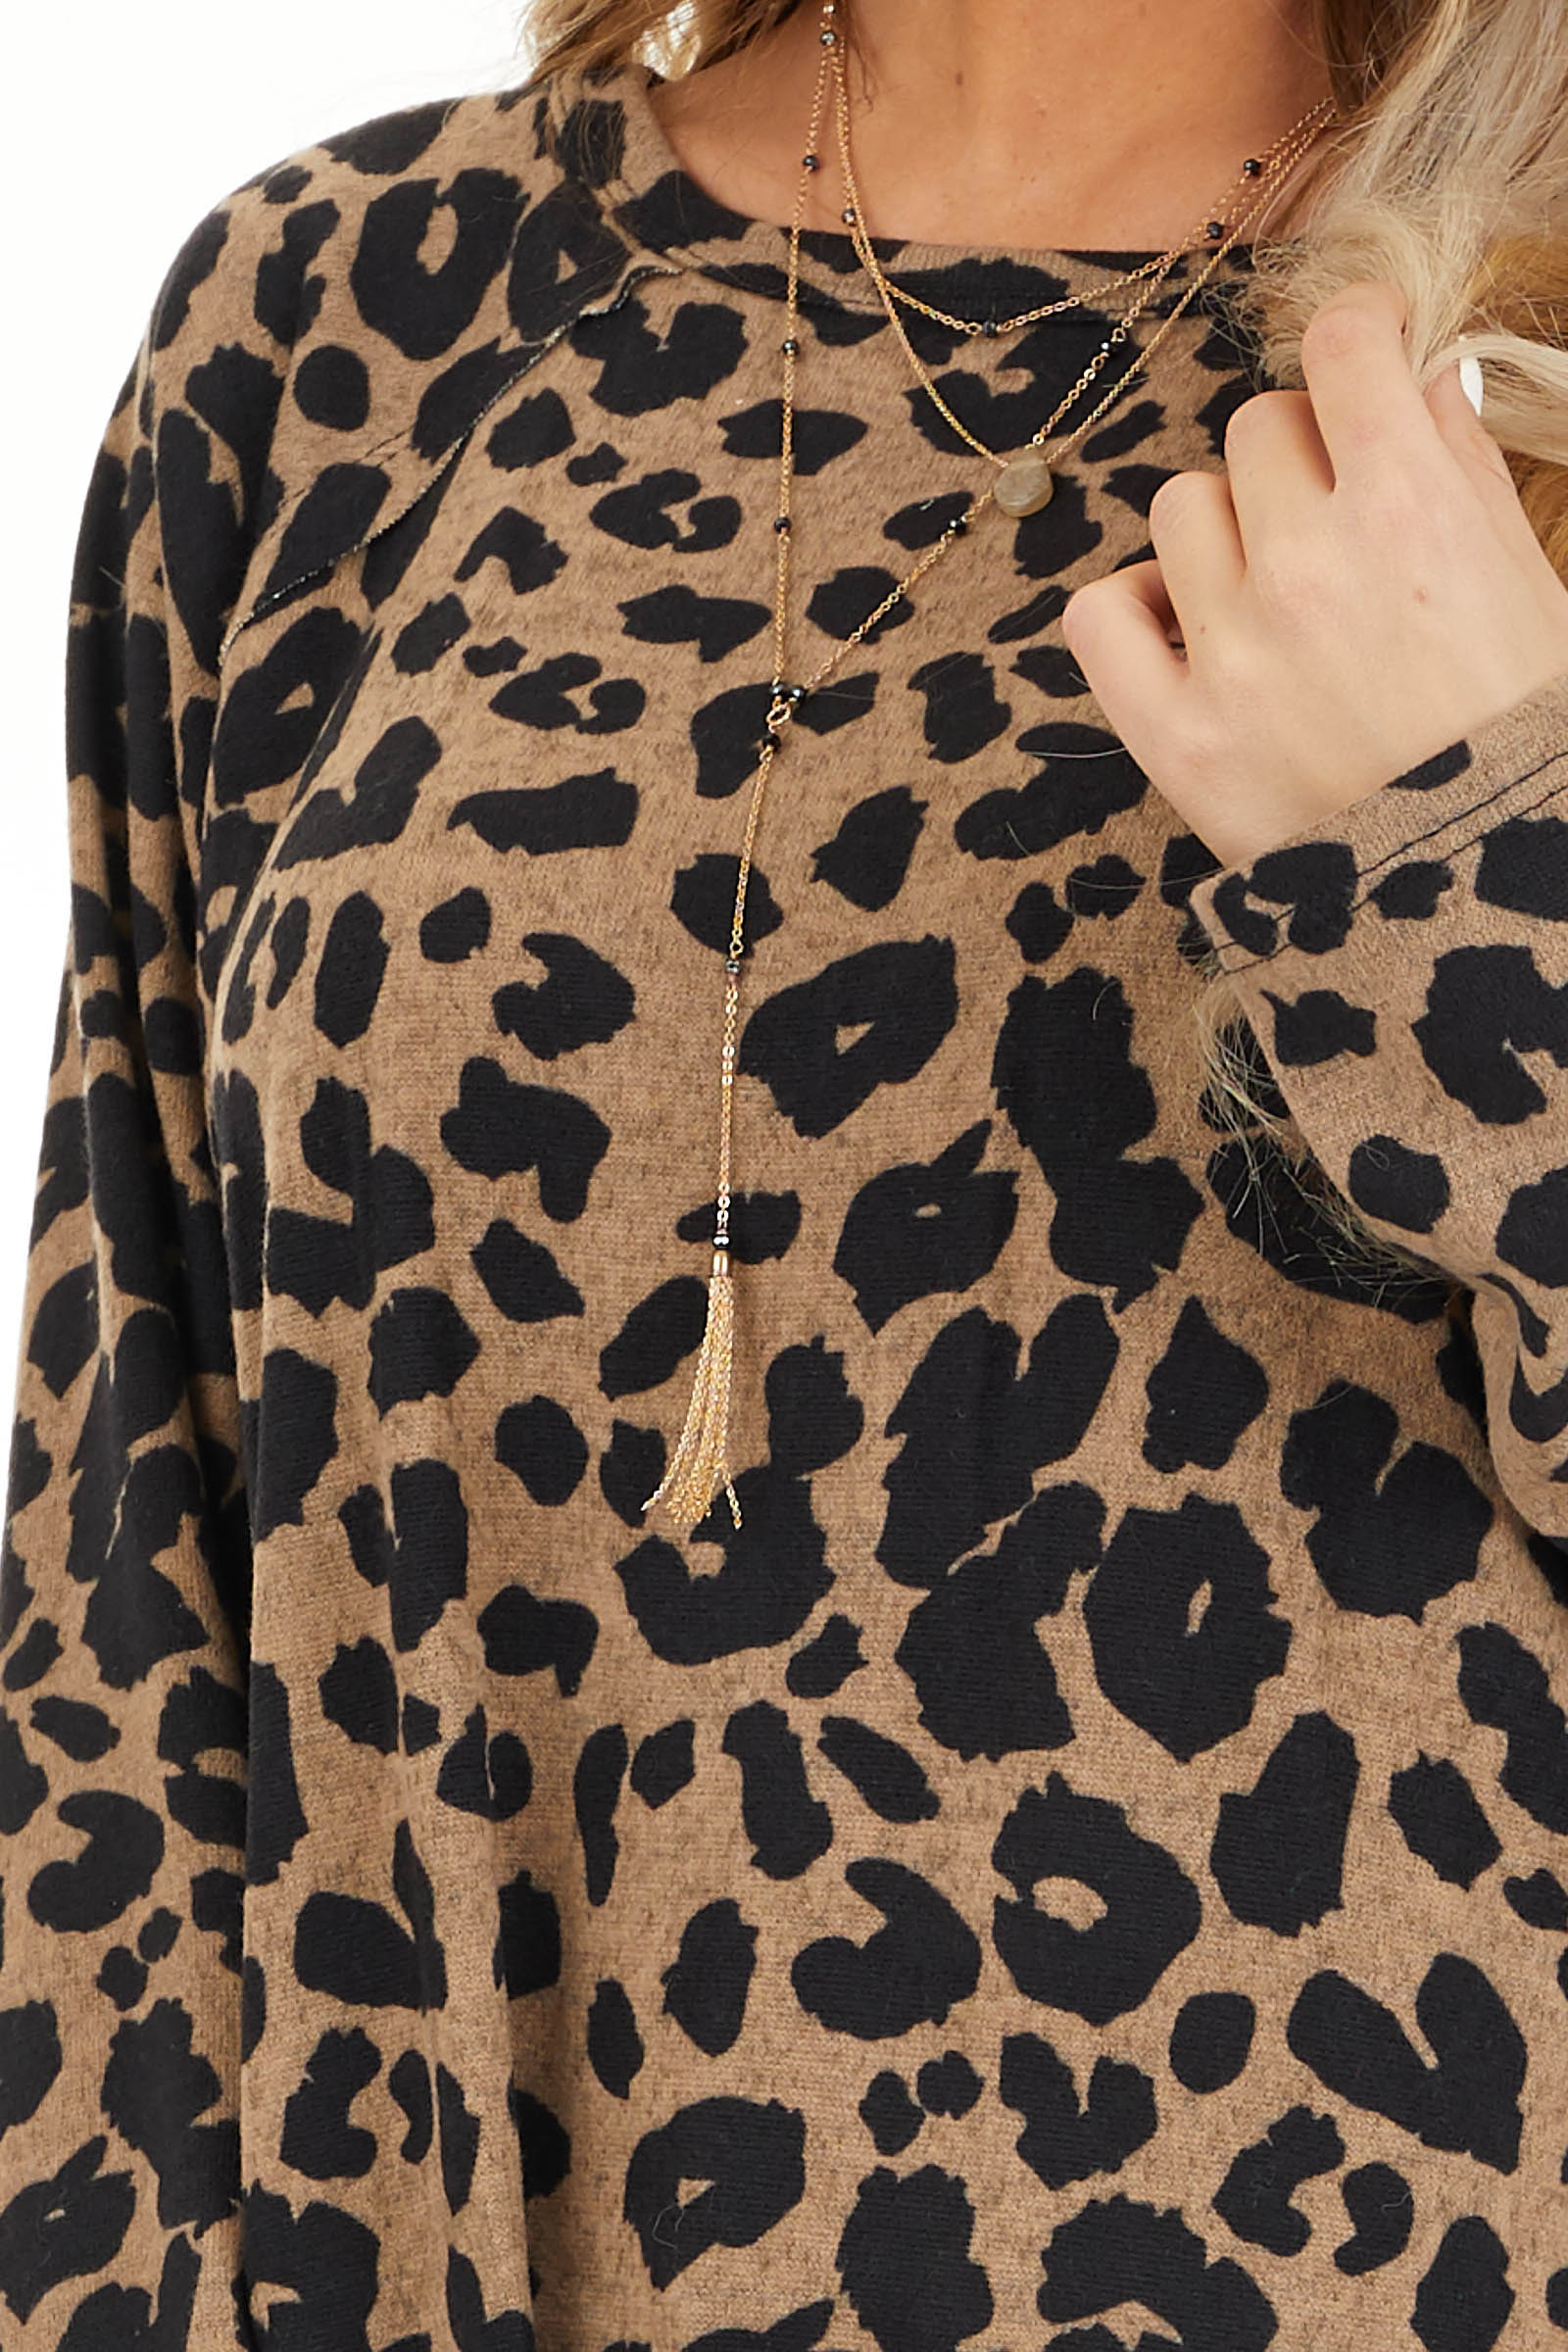 Taupe and Black Animal Print Long Sleeve Top detail